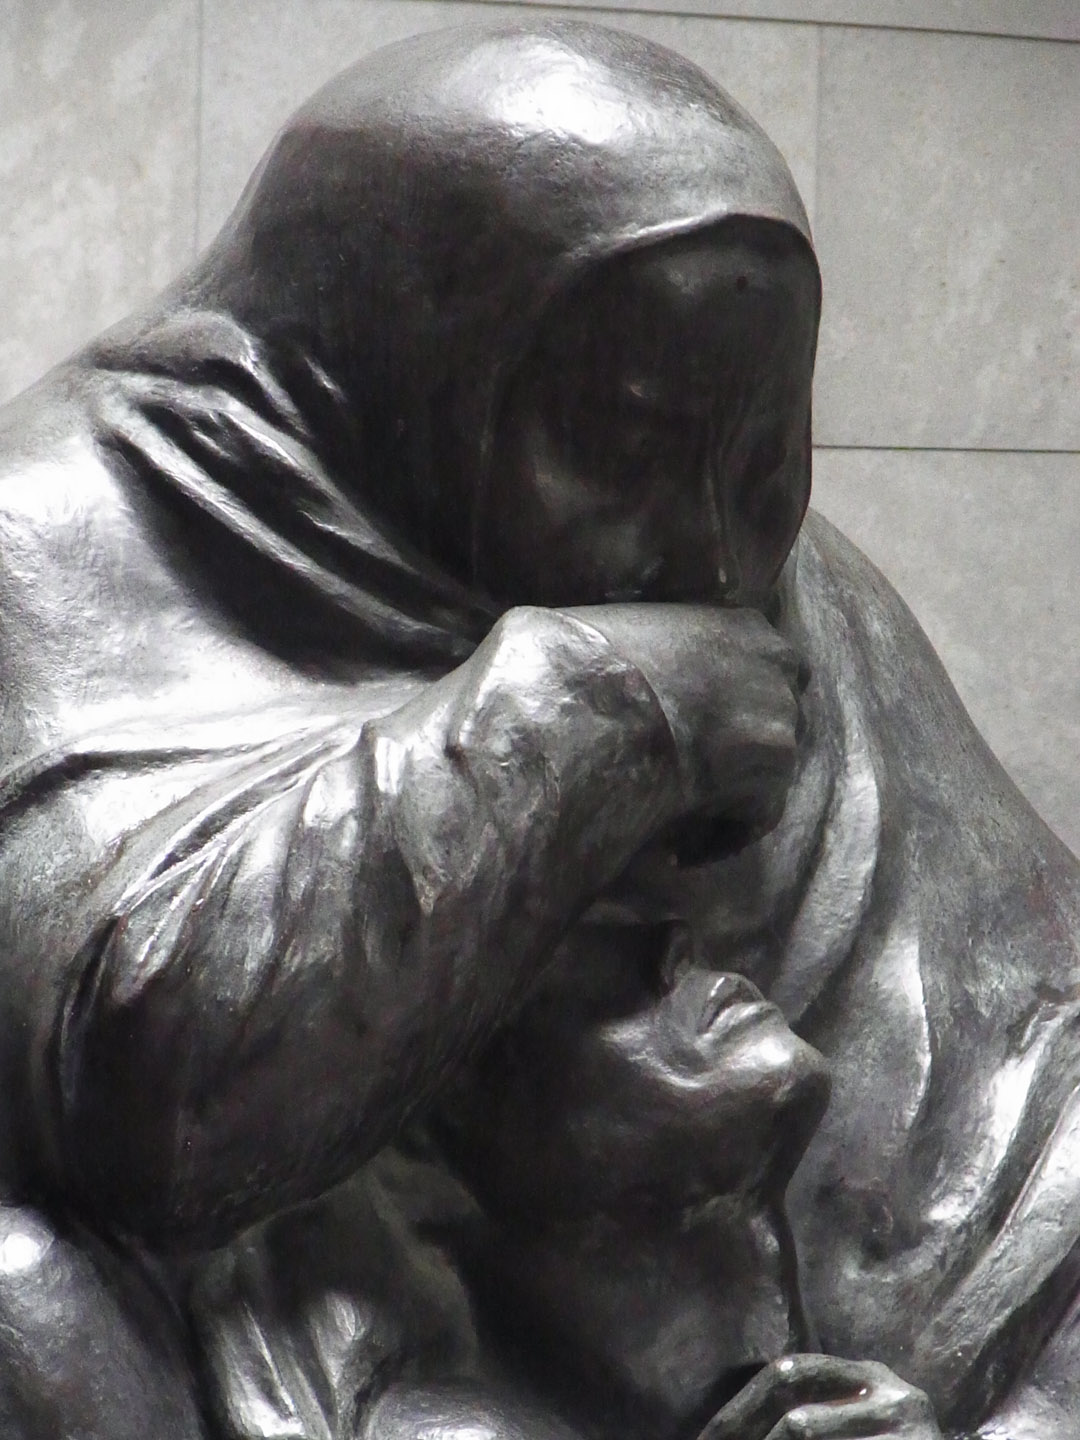 "After German reunification, the Neue Wache was again rededicated in 1993, as the ""Central Memorial of the Federal Republic of Germany for the Victims of War and Dictatorship."" At the personal suggestion of Chancellor Helmut Kohl, the GDR memorial piece was removed and replaced by an enlarged version of Käthe Kollwitz's sculpture Mother with her Dead Son. The pietà-style sculpture is directly placed under the oculus, and so is exposed to the rain, snow and cold of the Berlin climate, symbolizing the suffering of civilians during World War II."